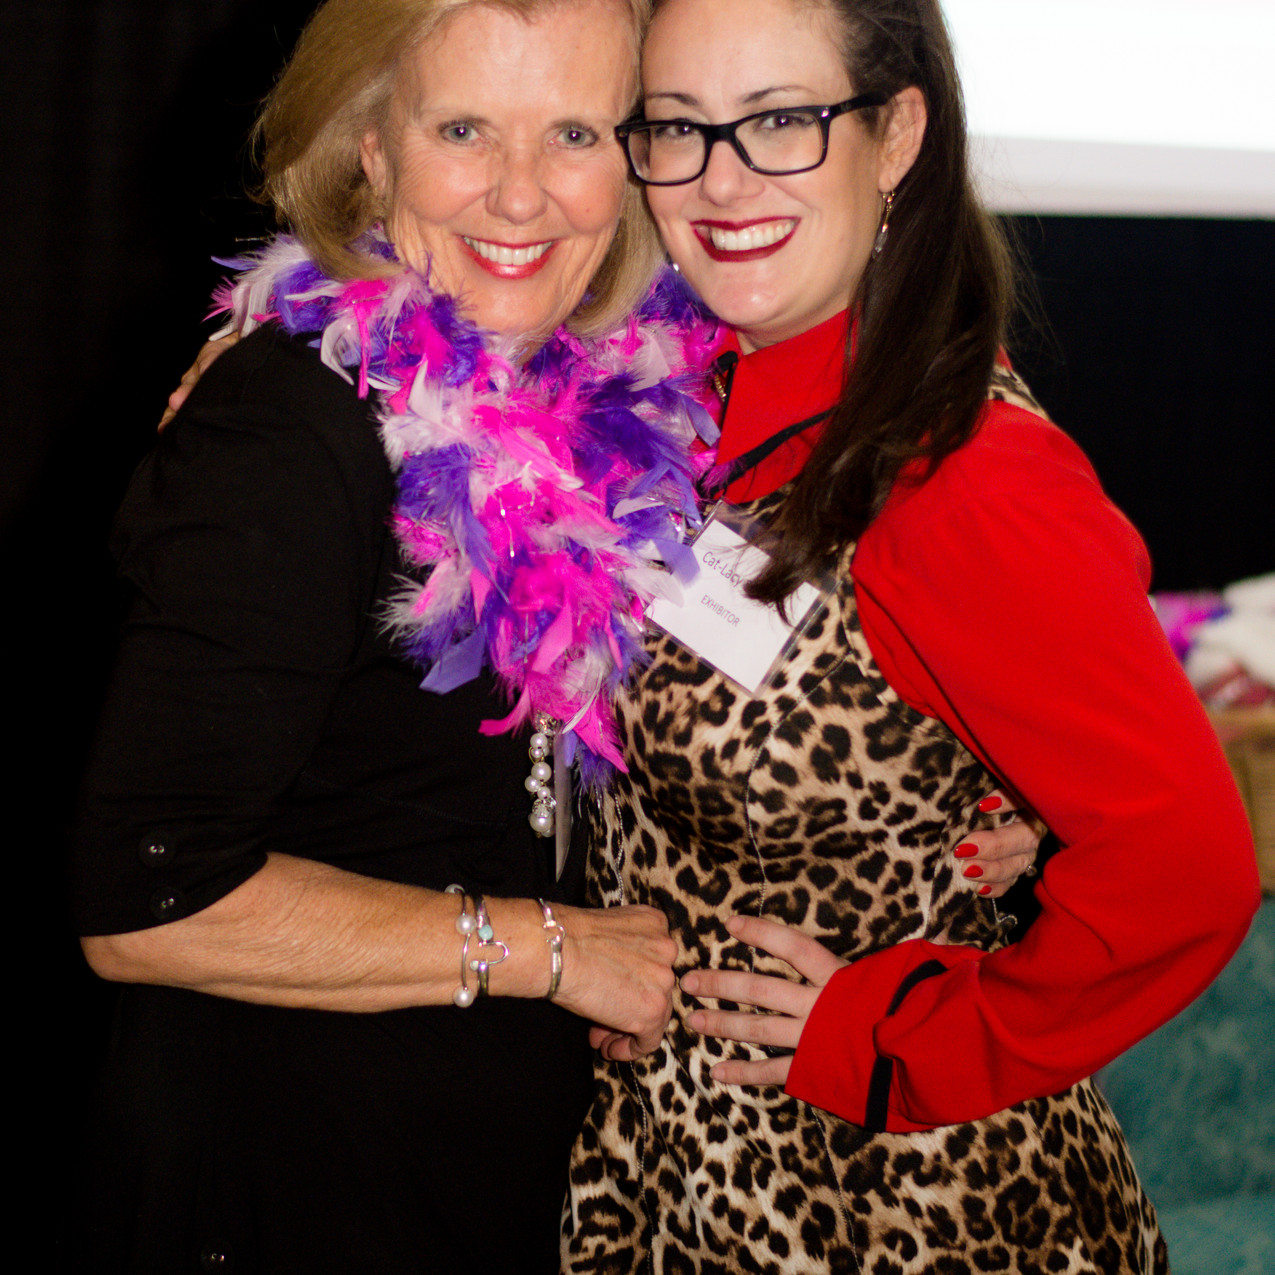 Catherine Lacy and Sheila Lacy of Cat Lacy Photography